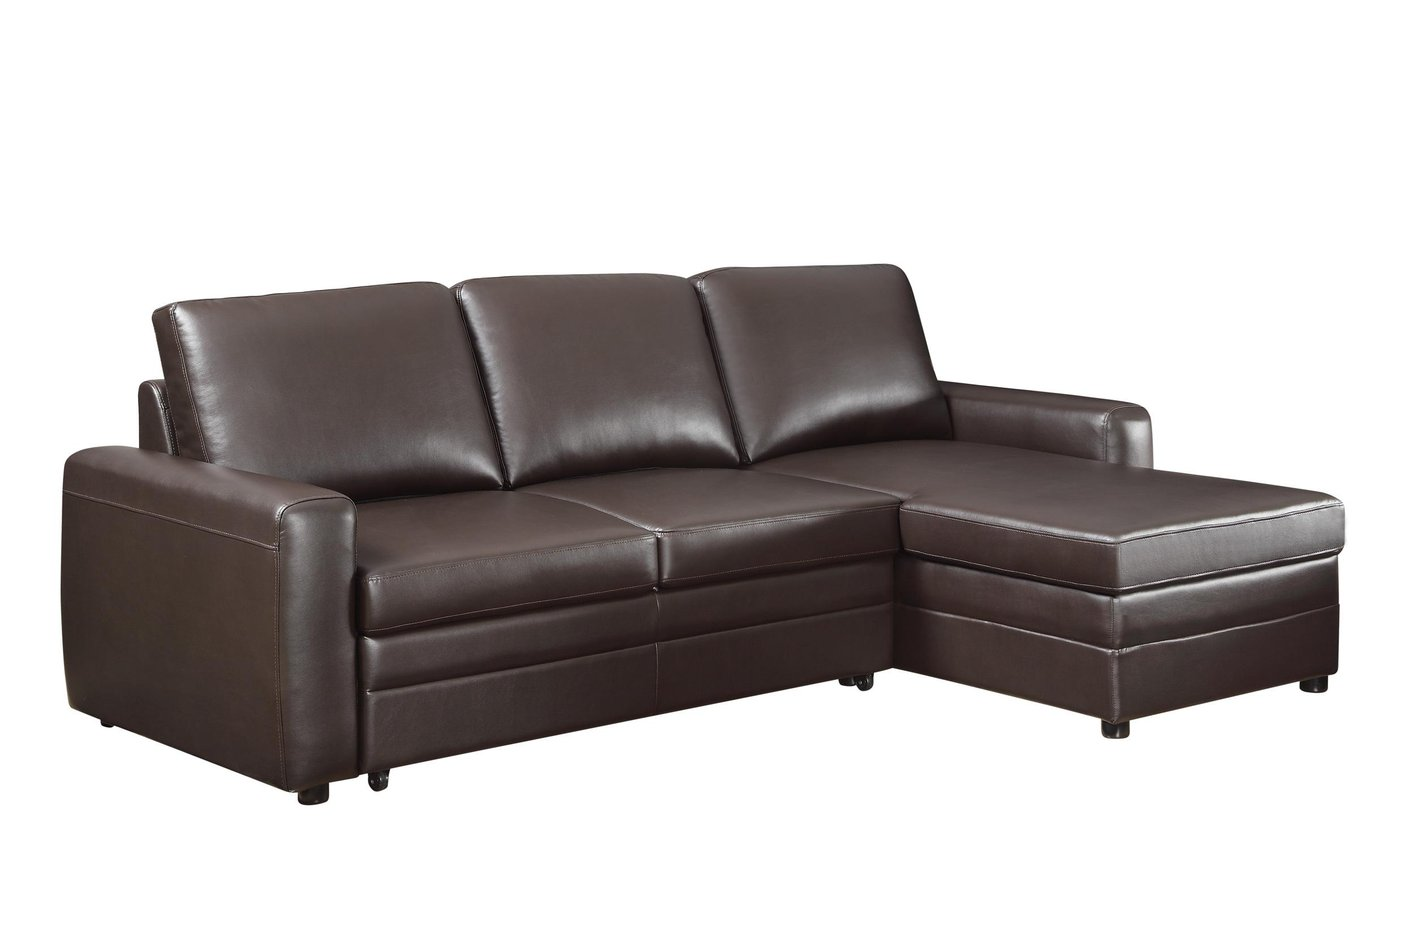 Coaster gus 503870 brown leather sectional sofa steal a for Gus sectional sleeper sofa